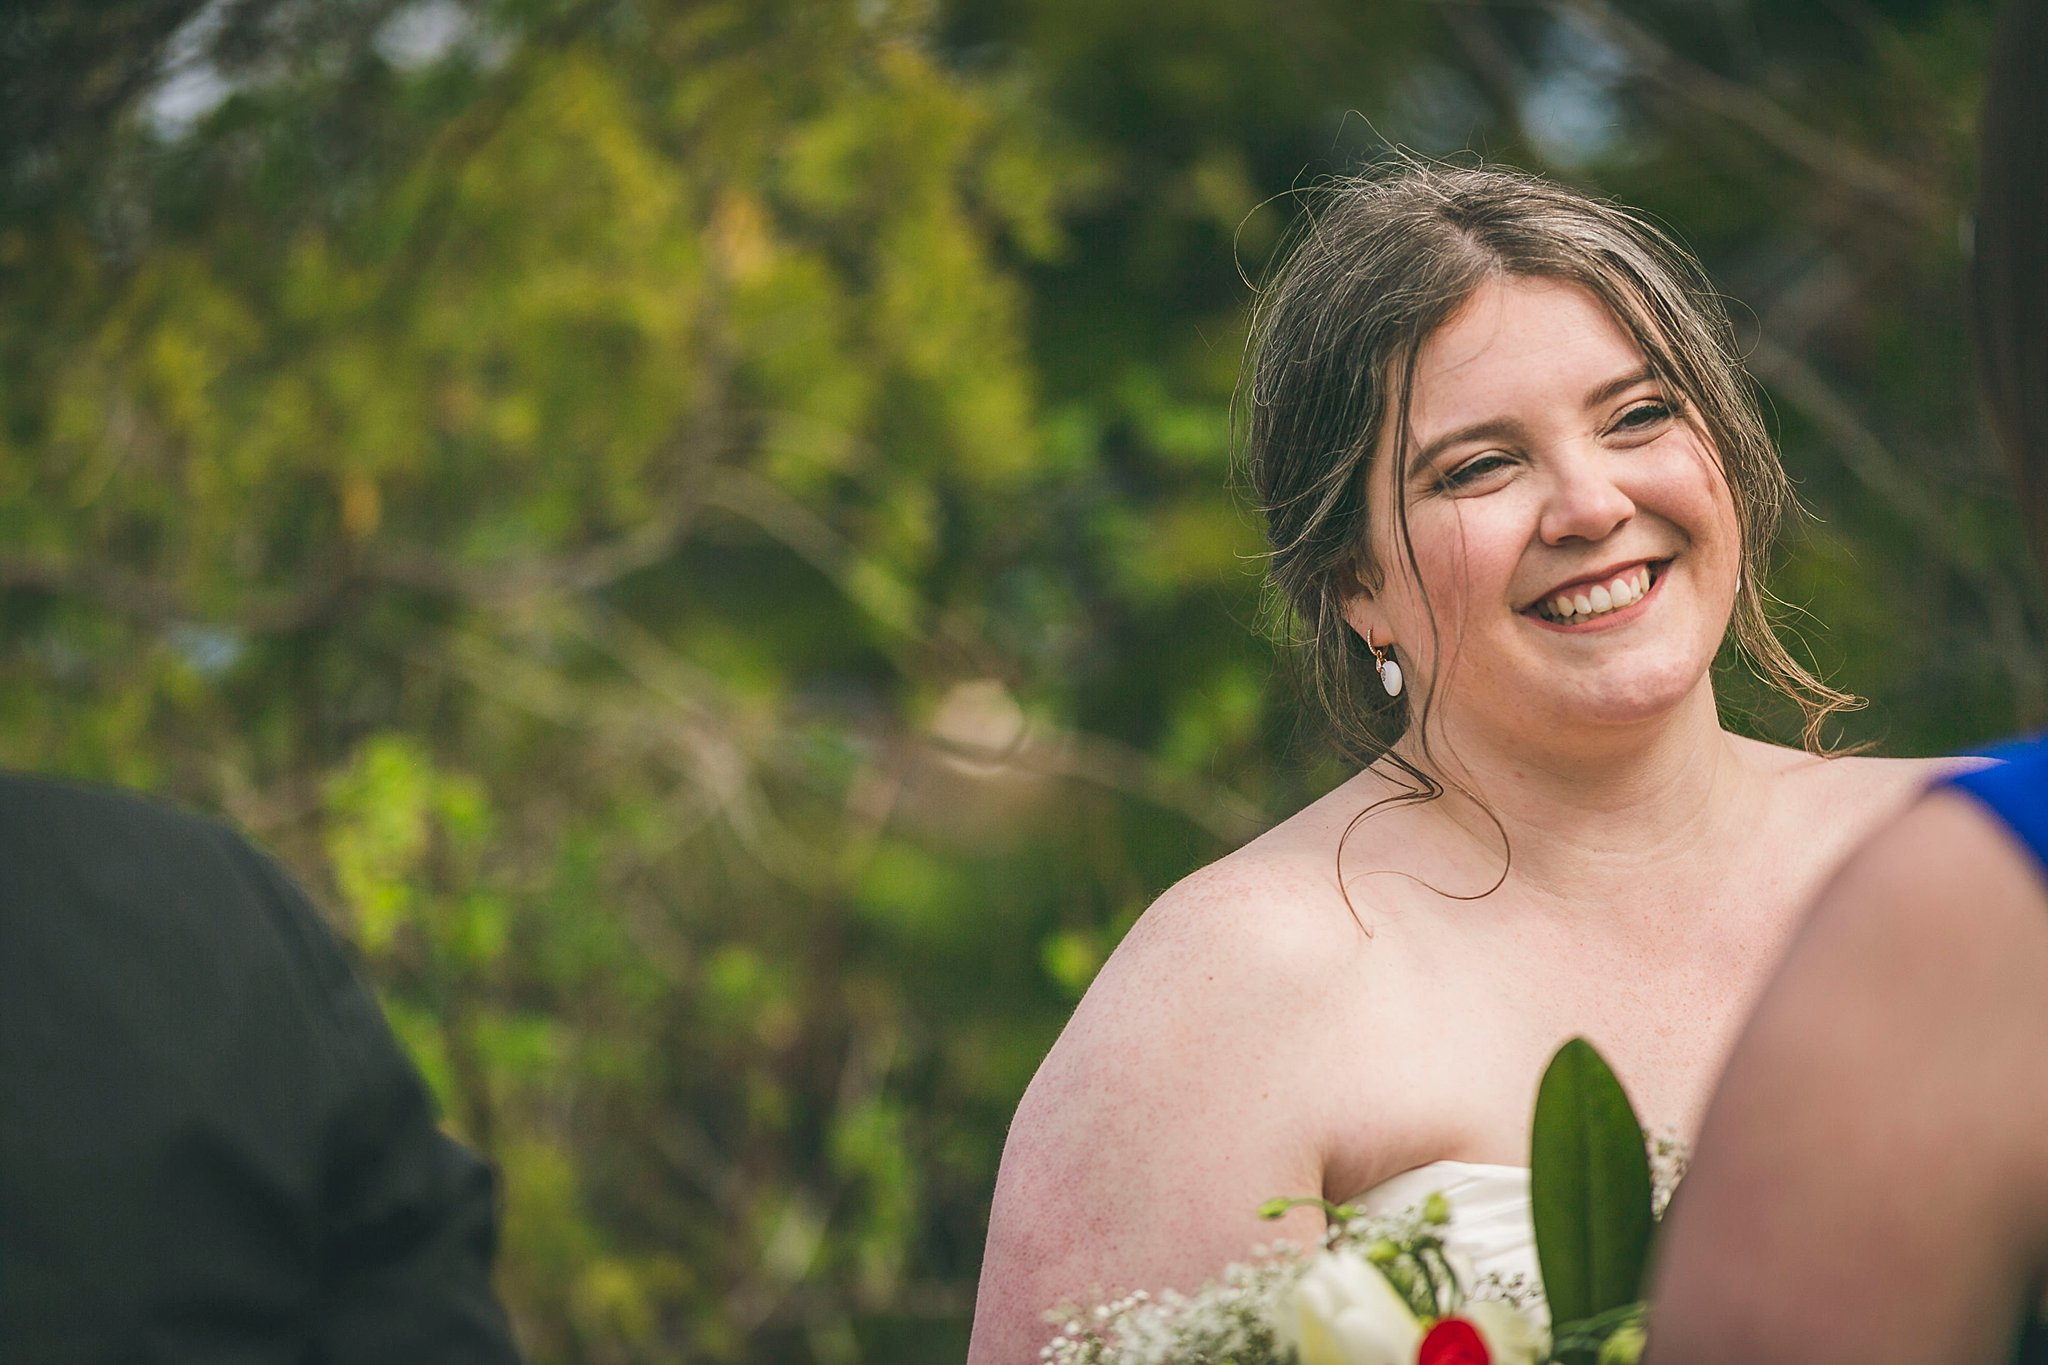 Outside Newfoundland wedding ceremony held at Murray's Pond in Portugal Cove-St. Philips